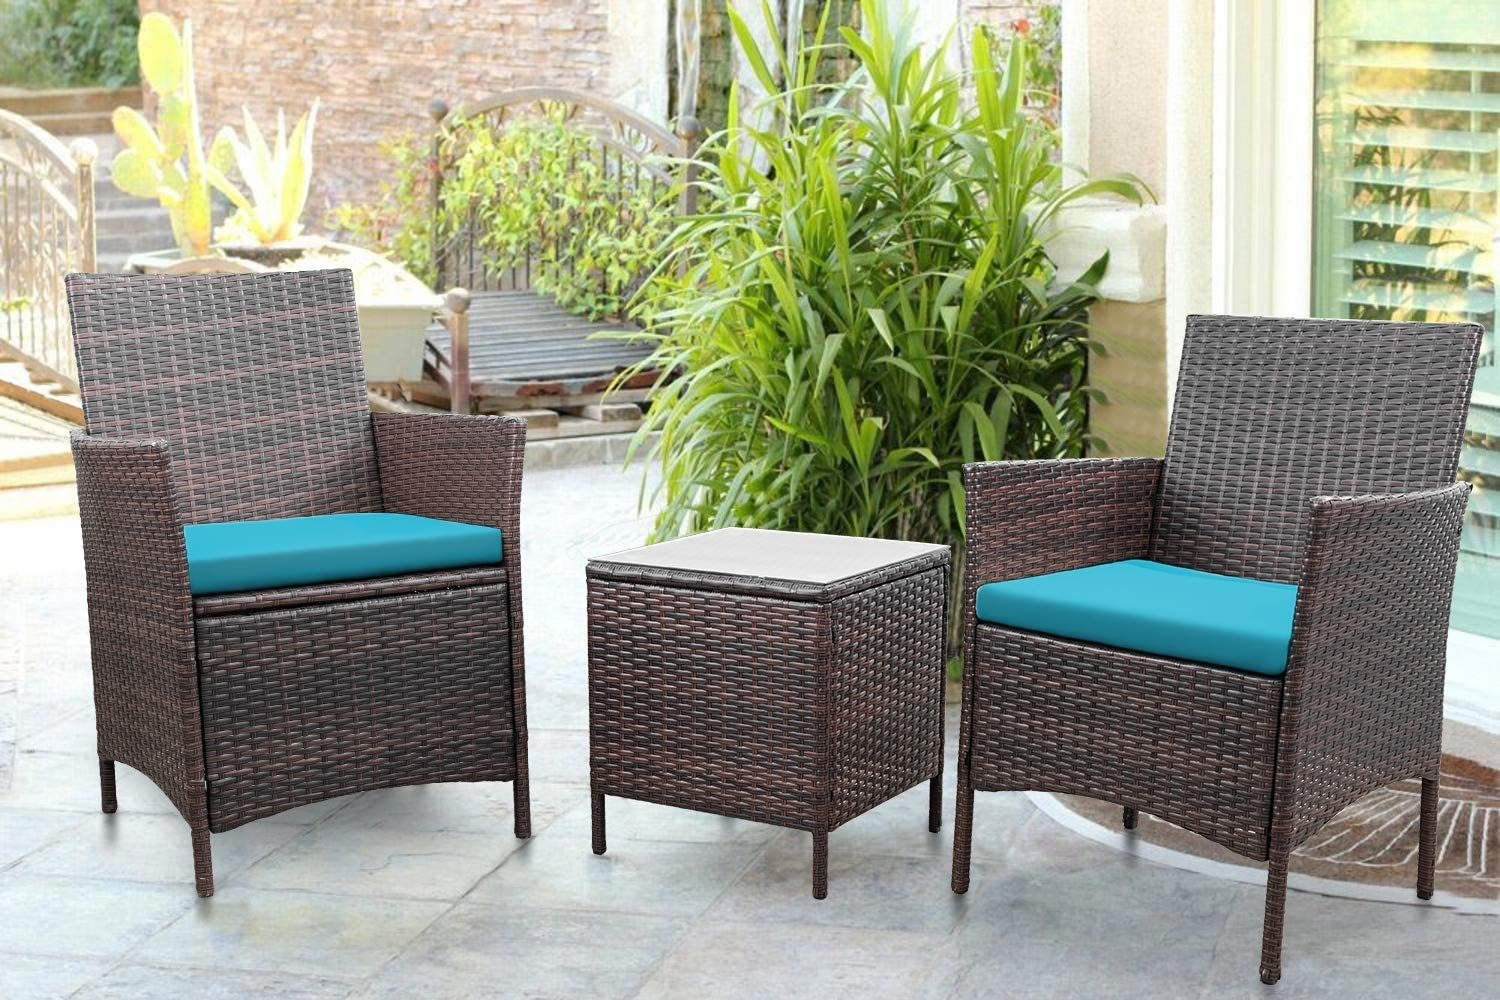 Greesum 3 Pieces Outdoor Patio Furniture Sets, PE Rattan Wicker Chair Conversation Sets with Soft Cushion and Glass Coffee Table for Garden Backyard Porch Poolside, Brown and Blue